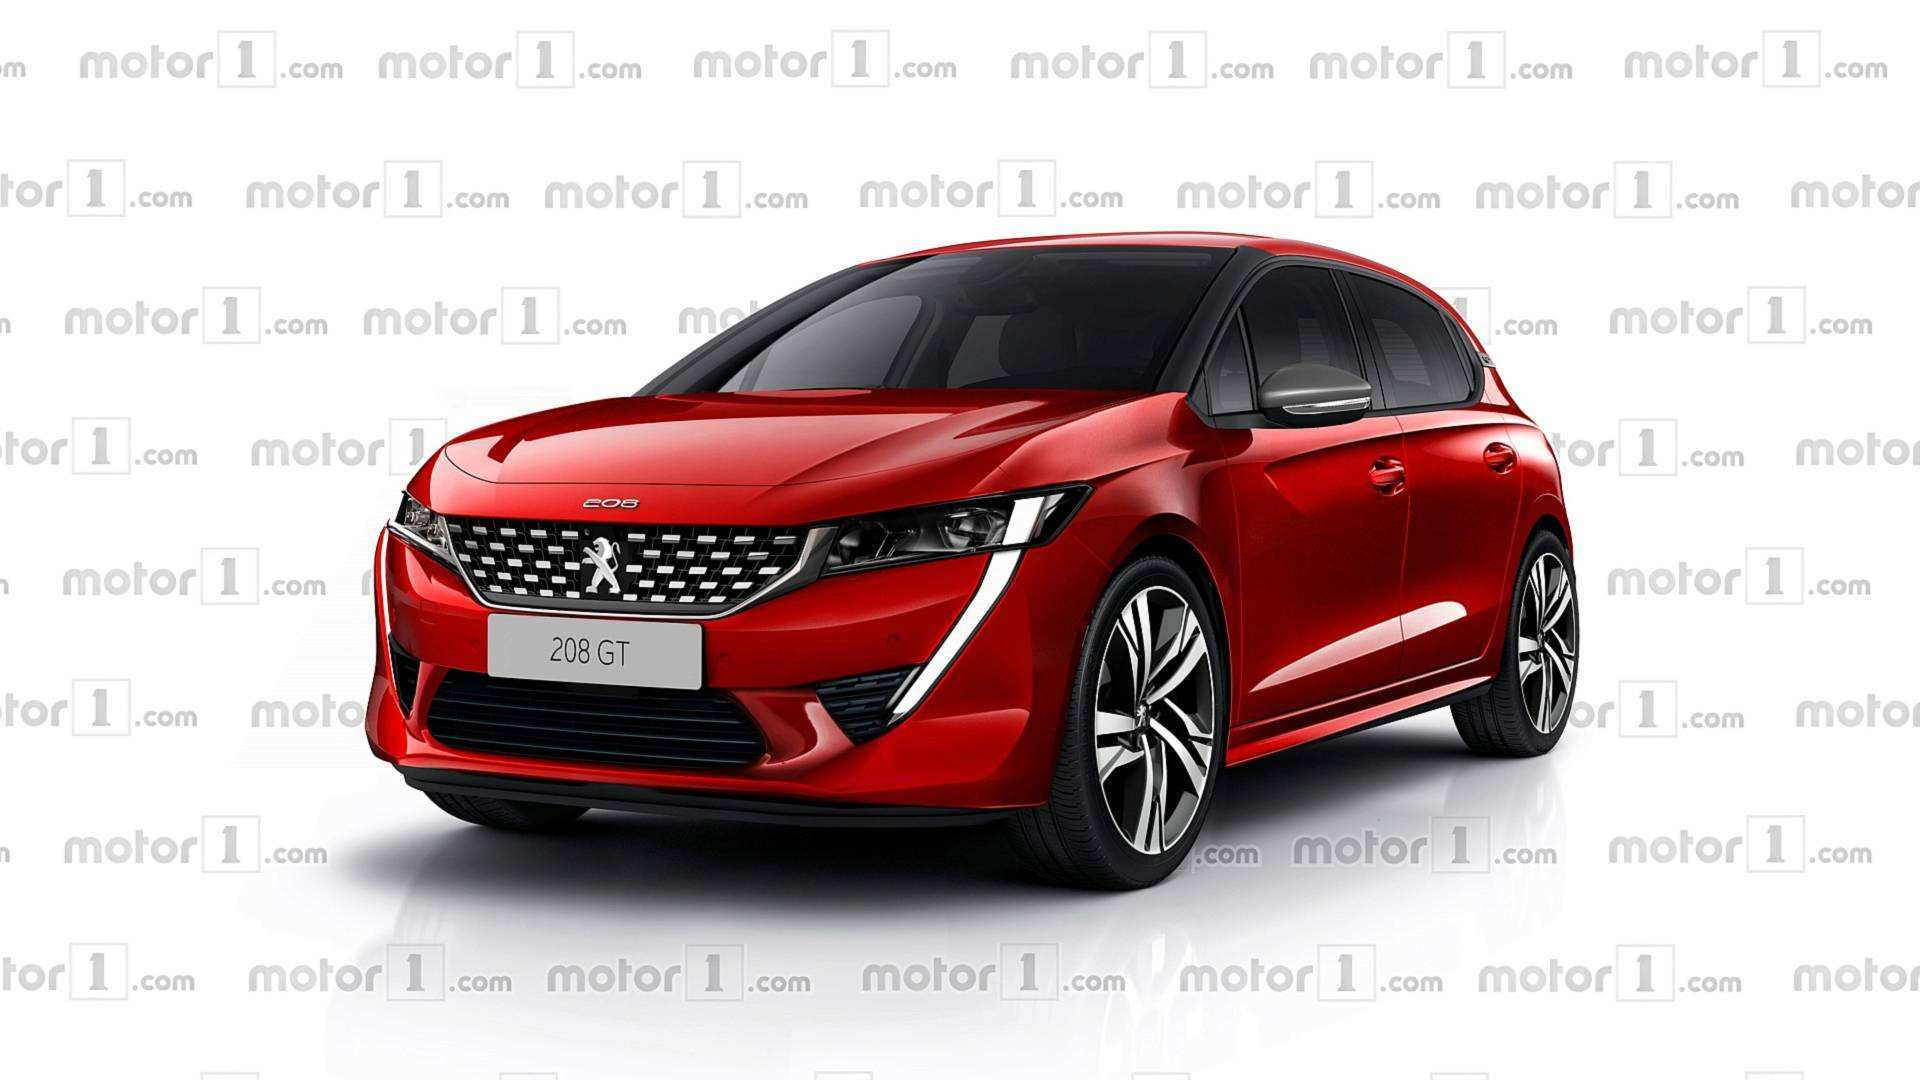 66 All New Peugeot En 2019 Pricing by Peugeot En 2019